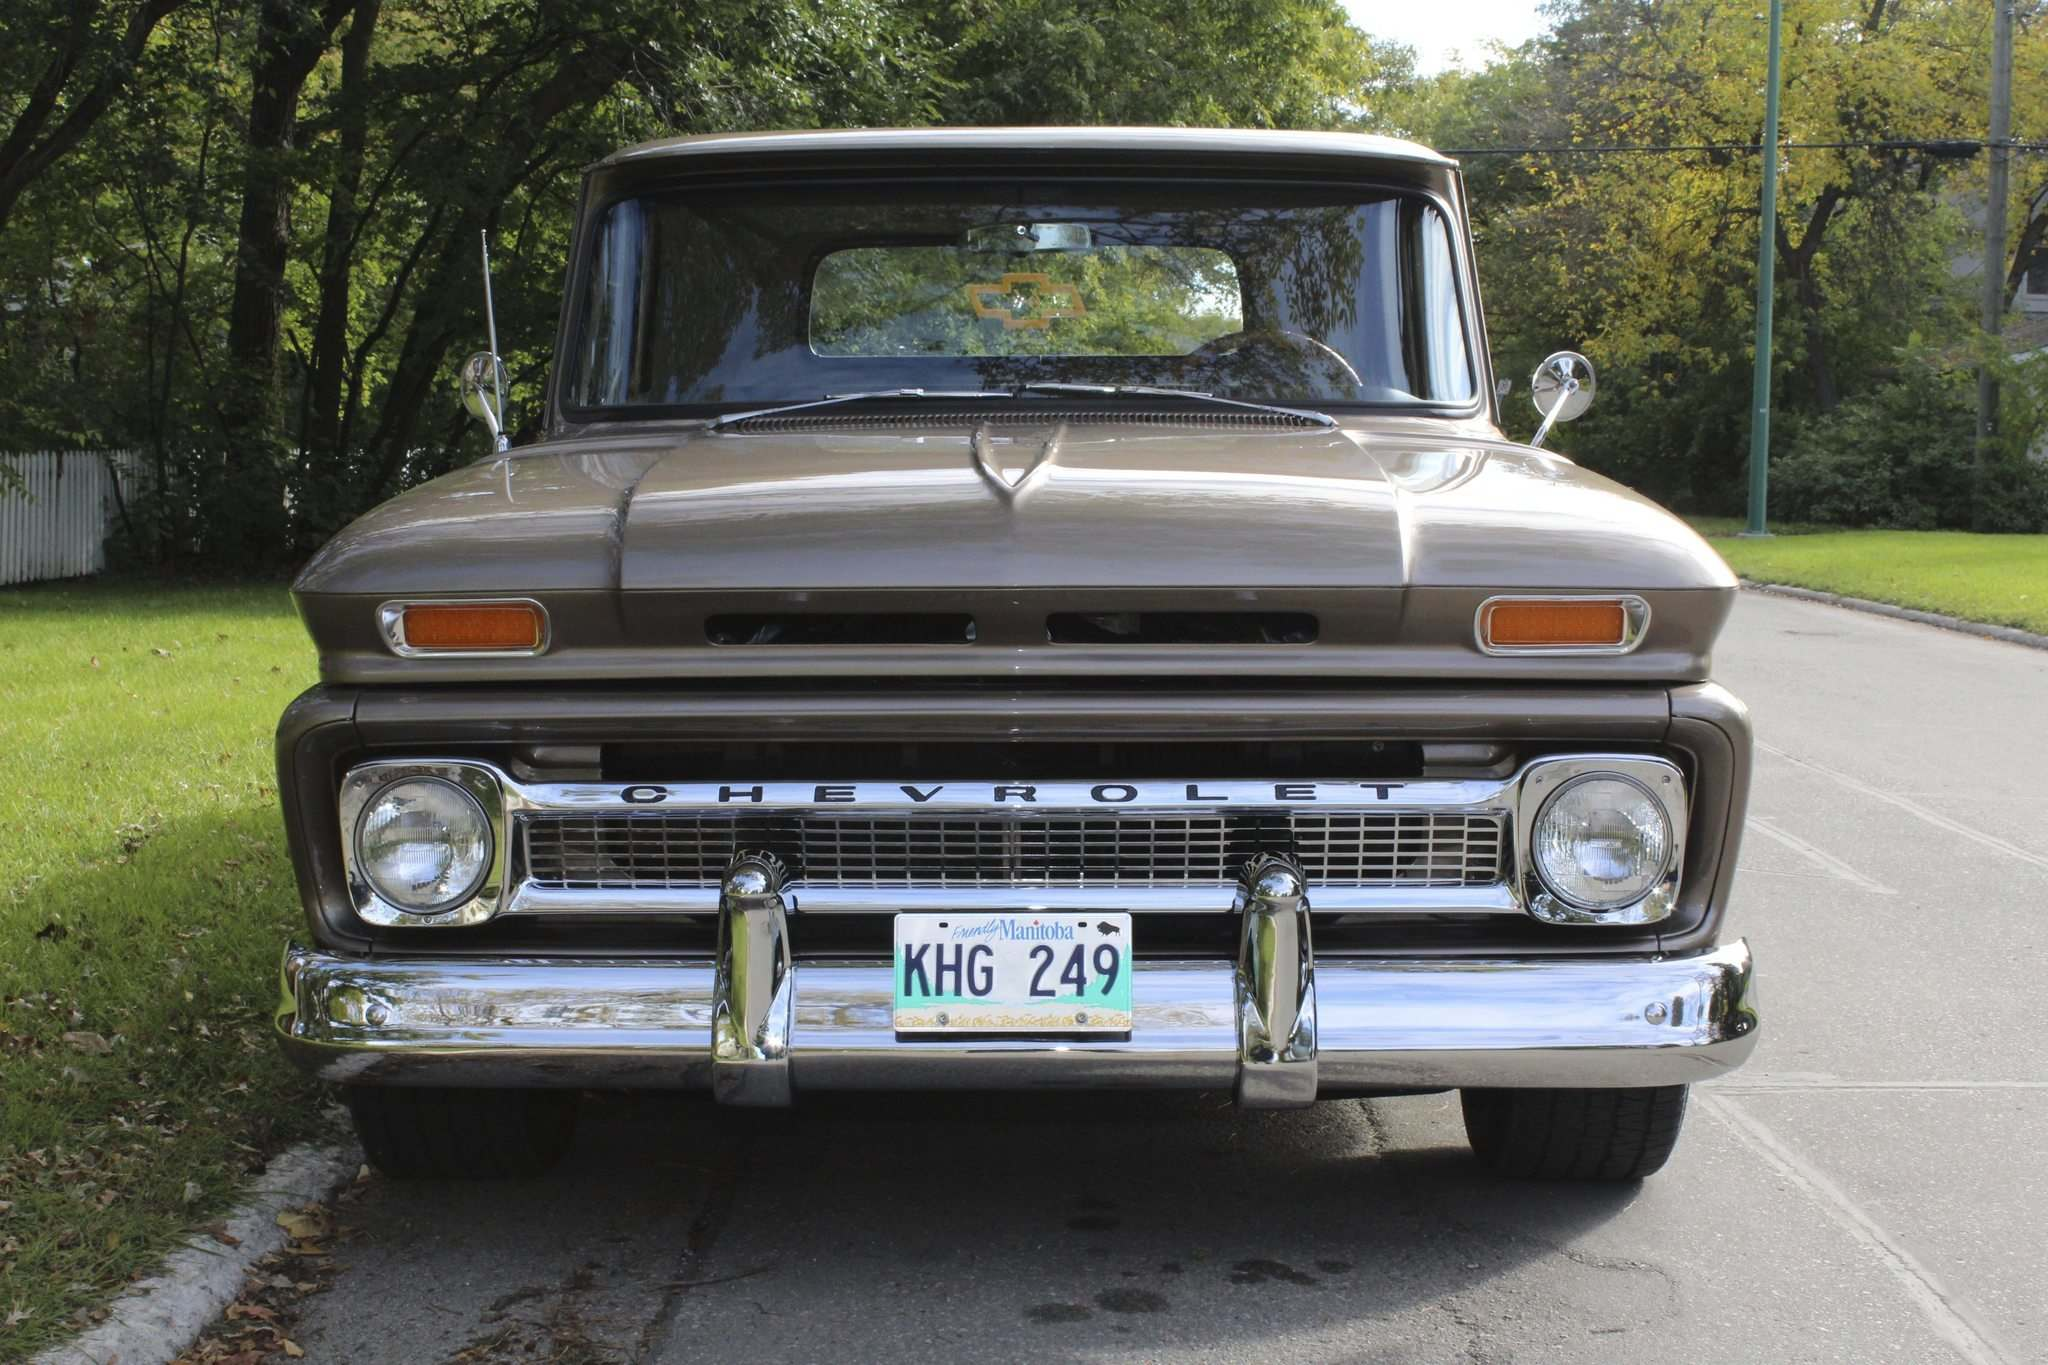 Larry D'Argis / Winnipeg Free Press</p><p>The Seidels' prized classic came already fully restored, with upgrades including a finished oak cargo bed, a 350-cubic-inch V-8 and a dash gauge cluster from a larger Chevrolet tandem truck.</p>